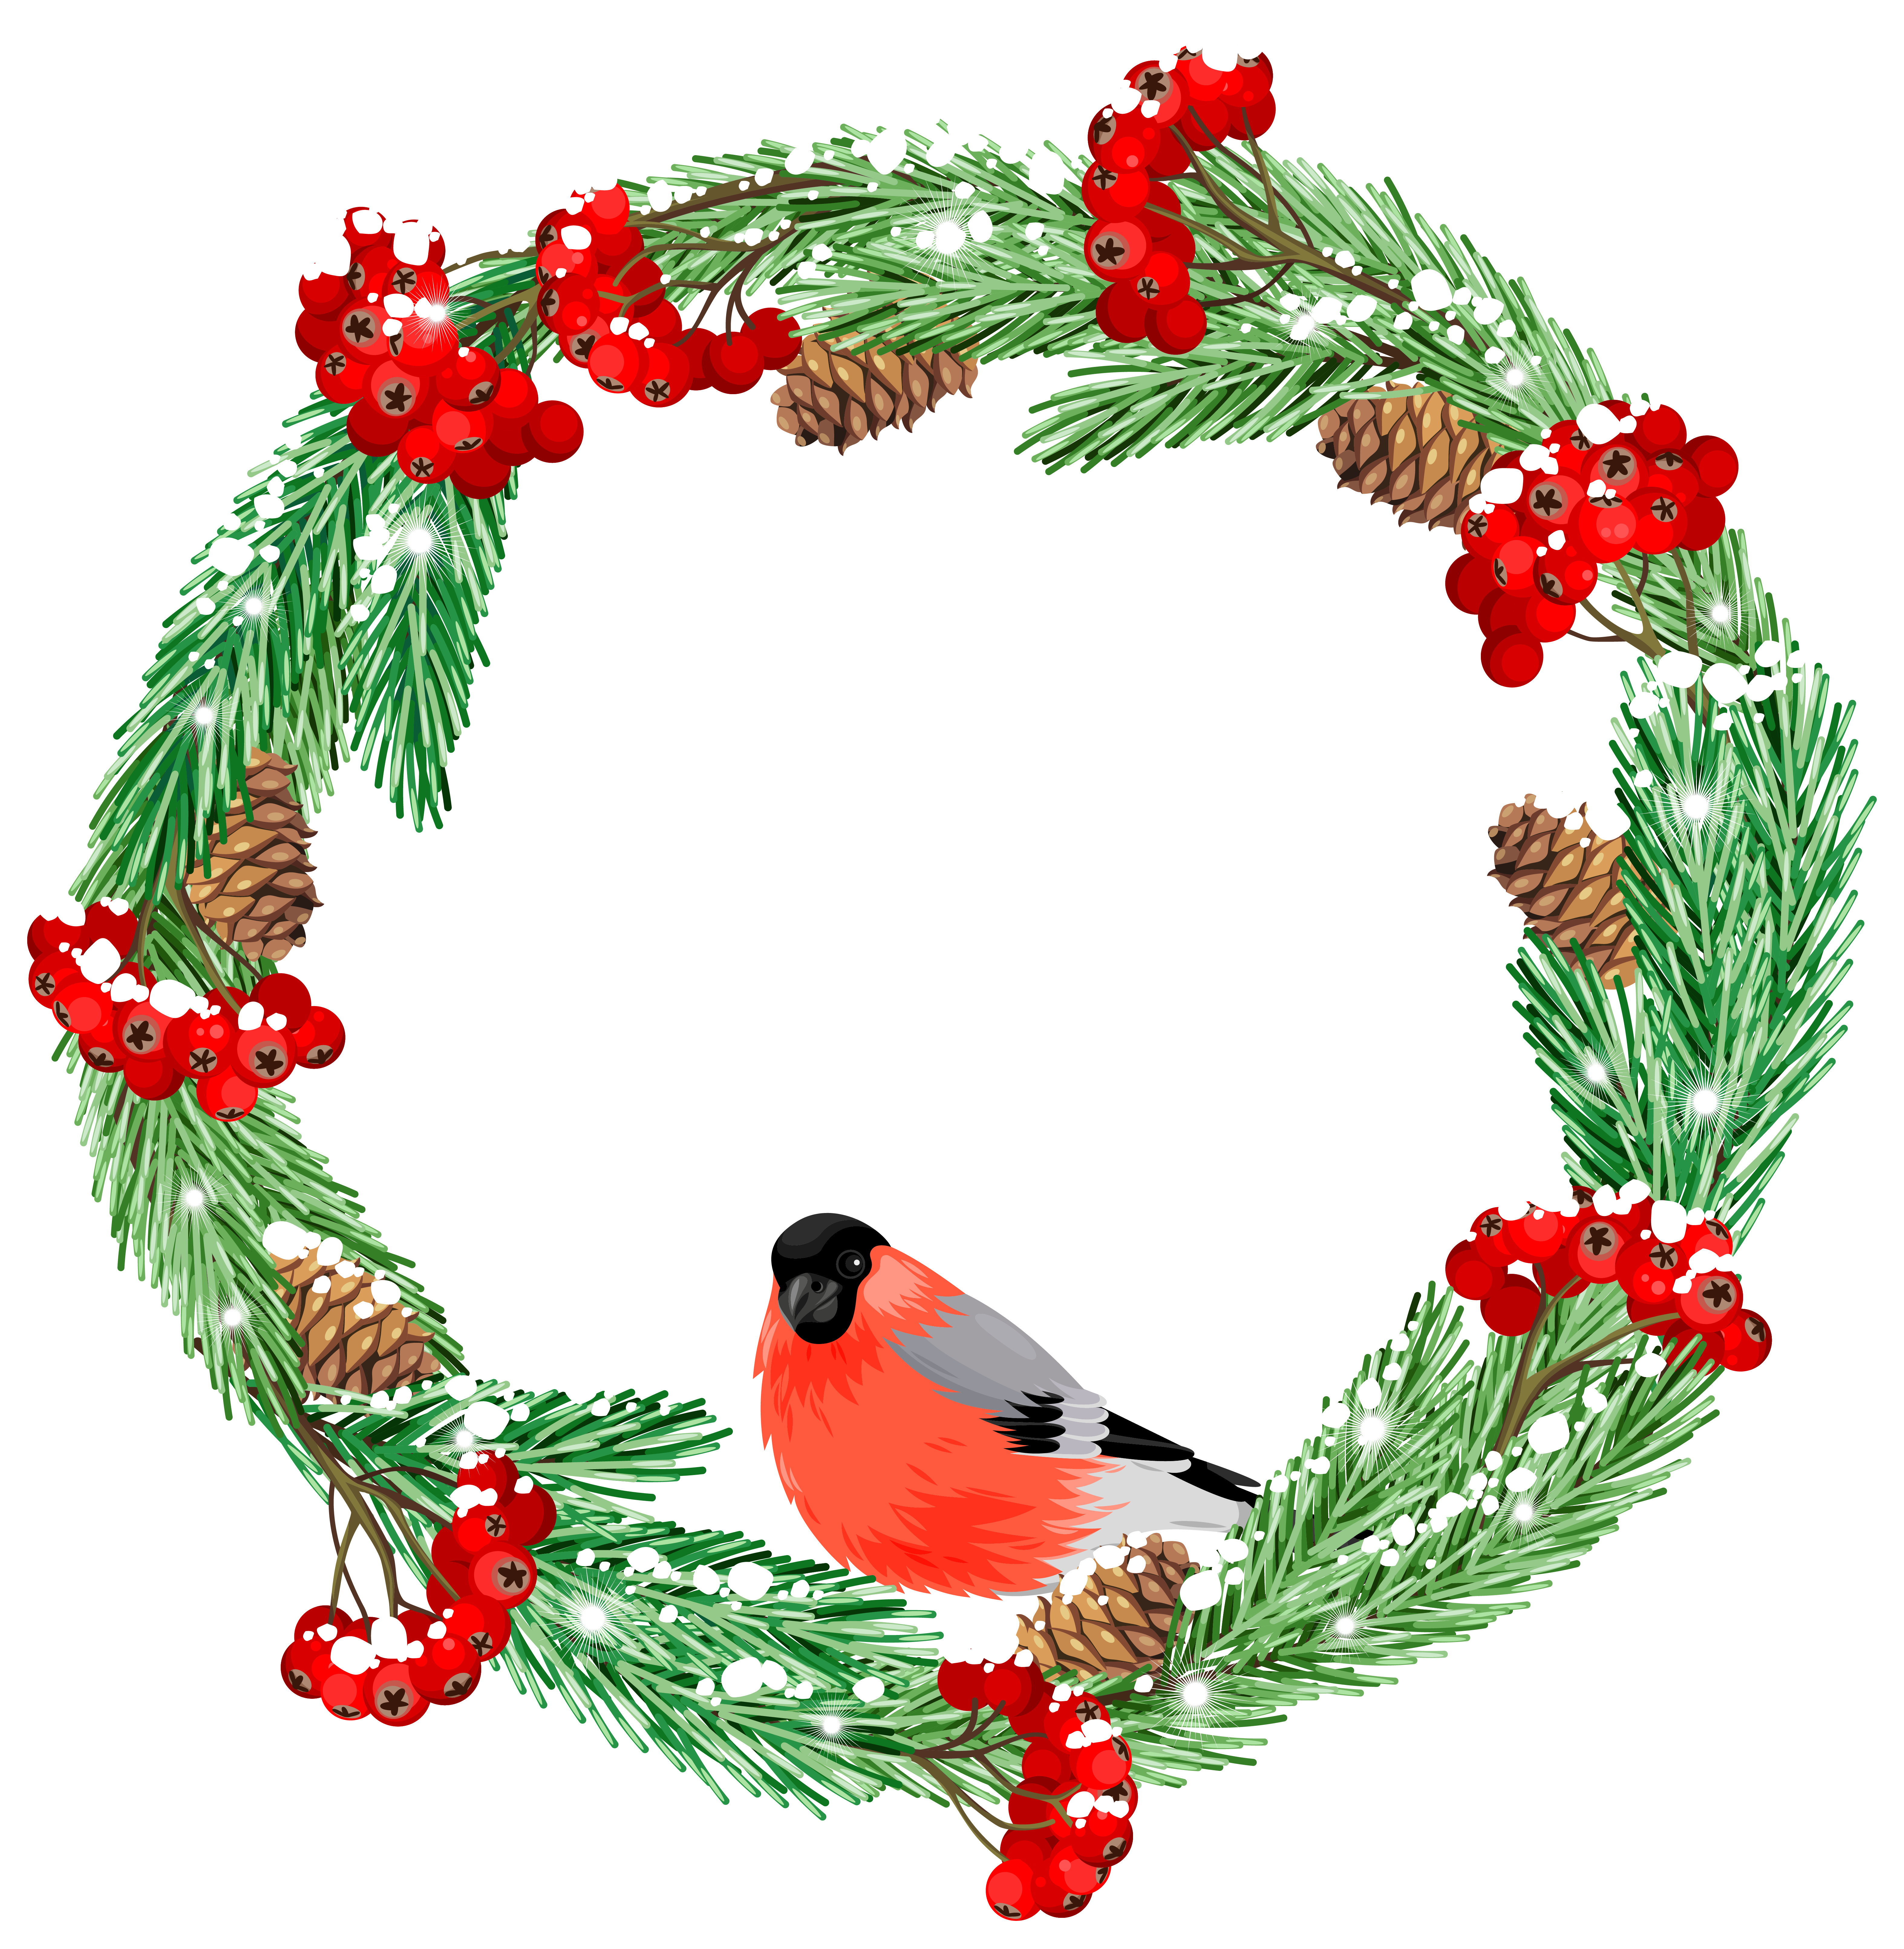 Christmas bird clipart picture library library Green Winter Wreath with Bird PNG Clip Art Image | Gallery ... picture library library